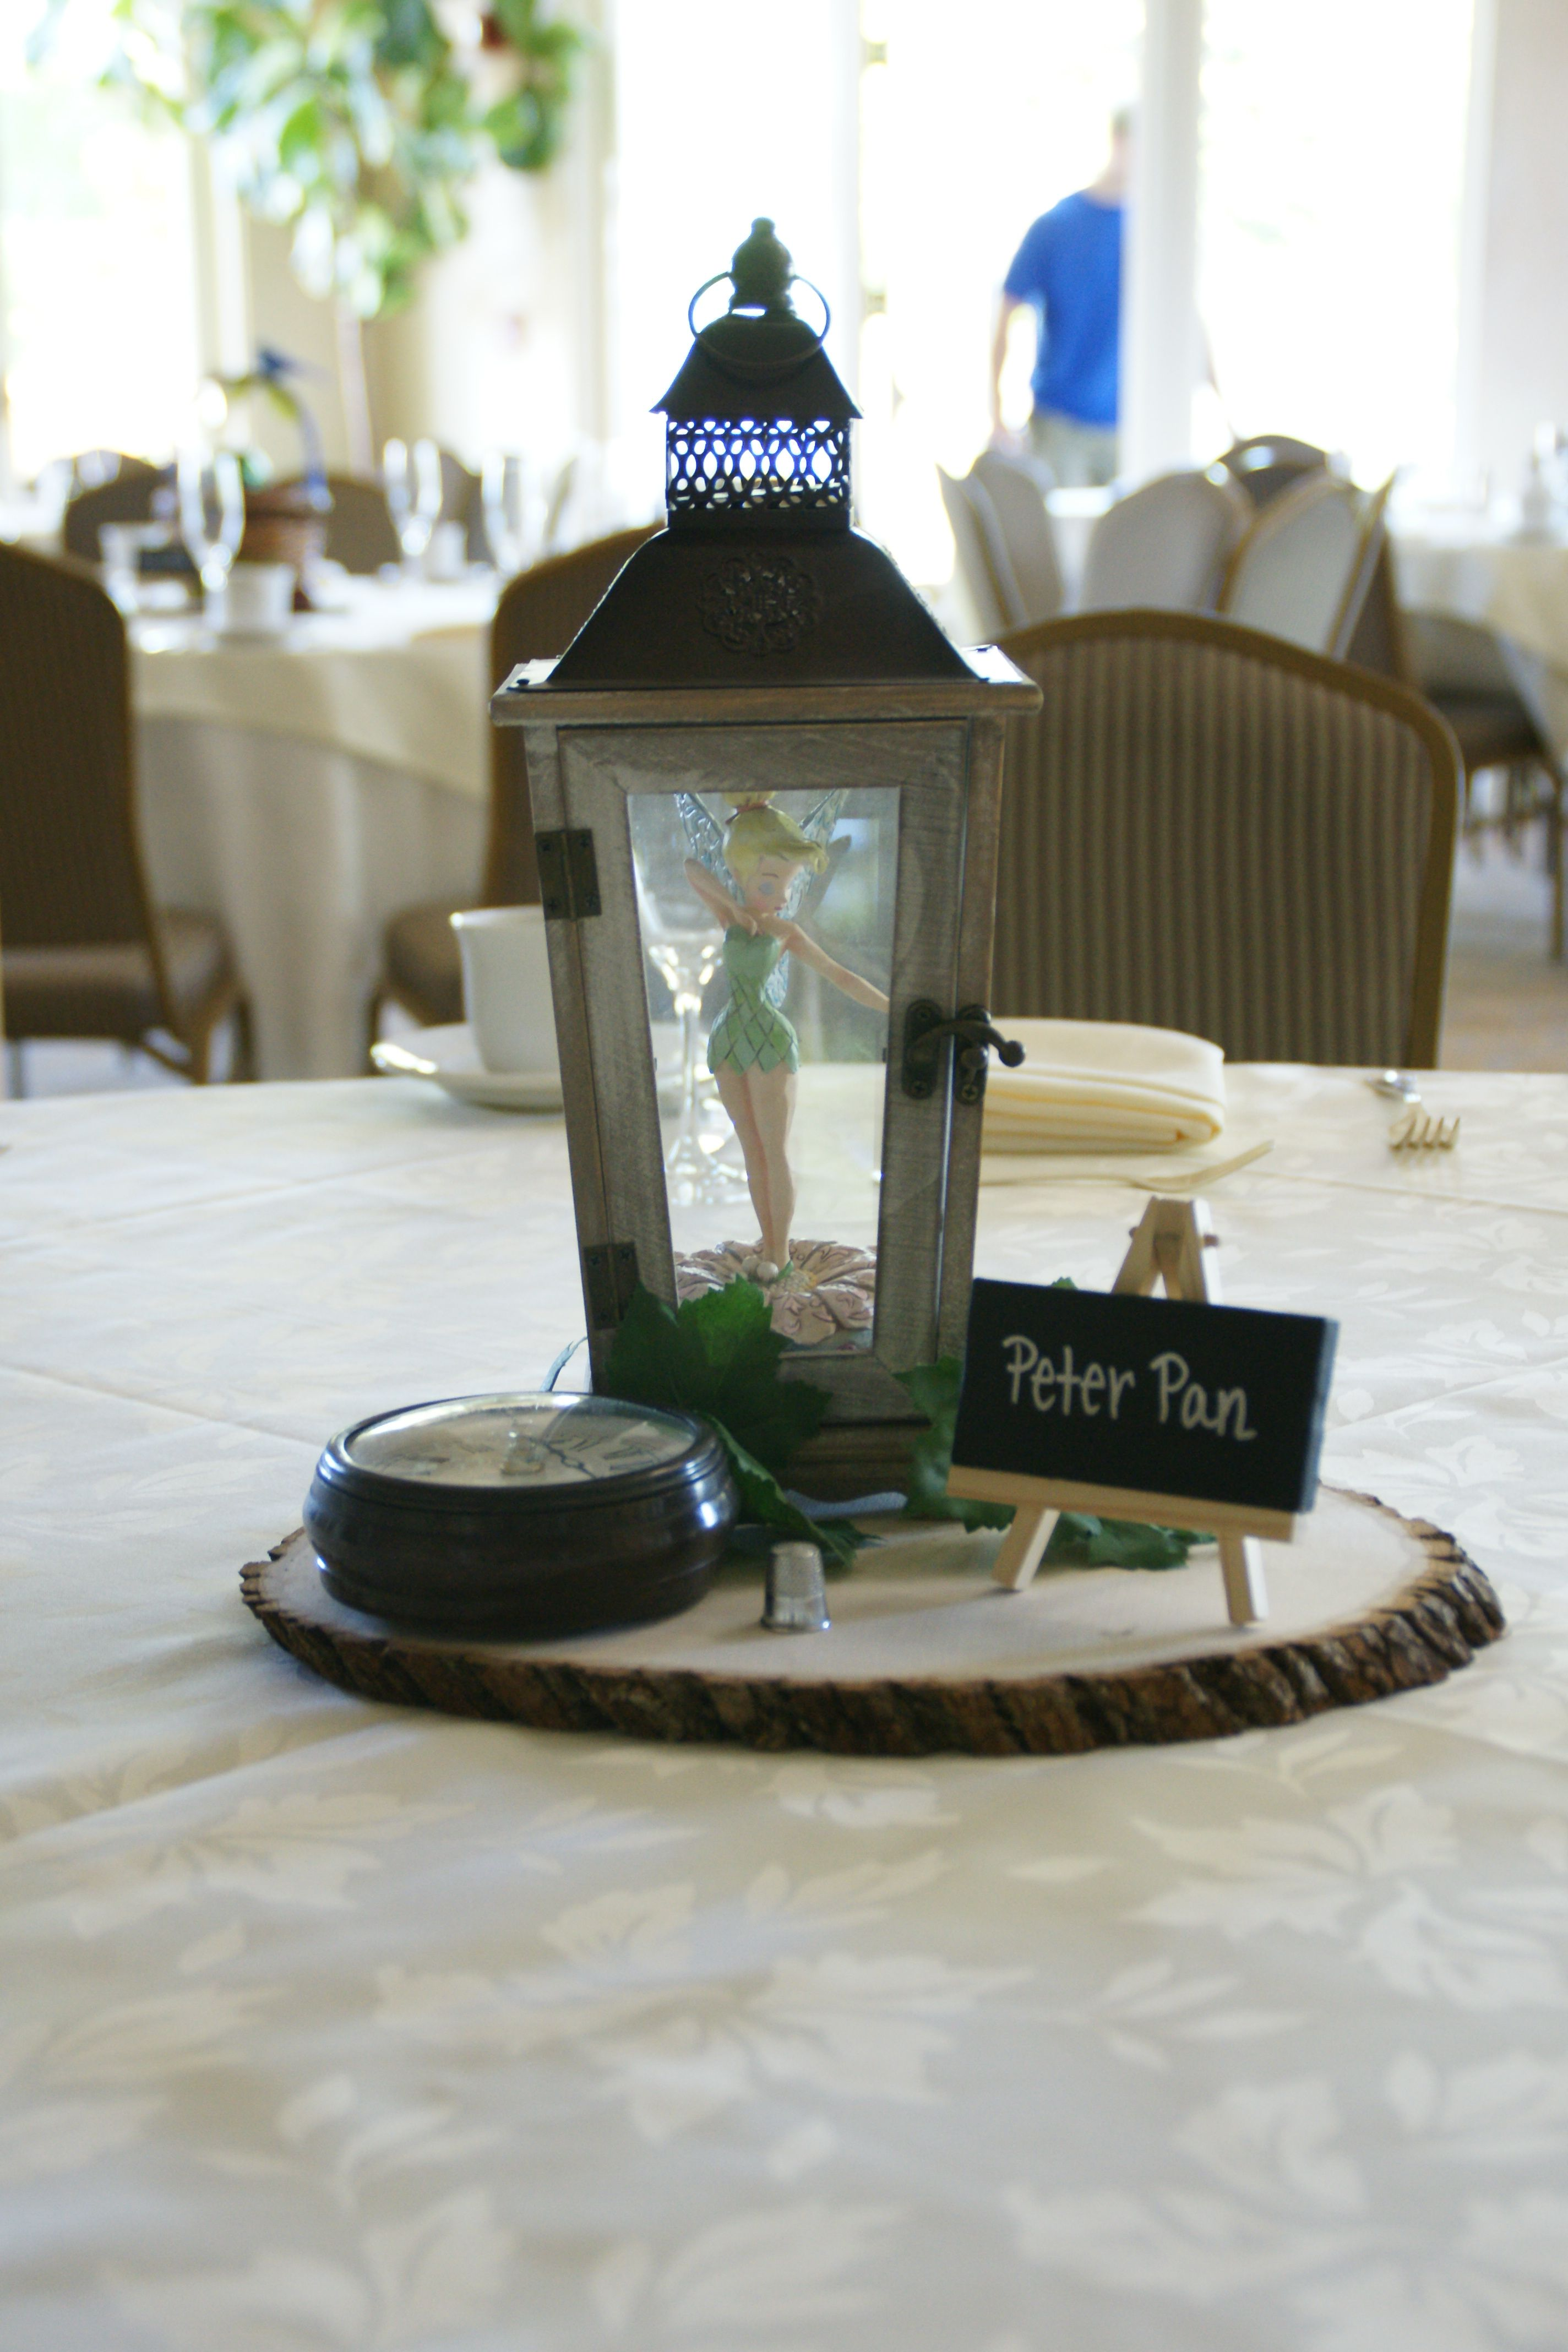 Peter Pan Centerpiece Bought The Lantern And Wooden Base